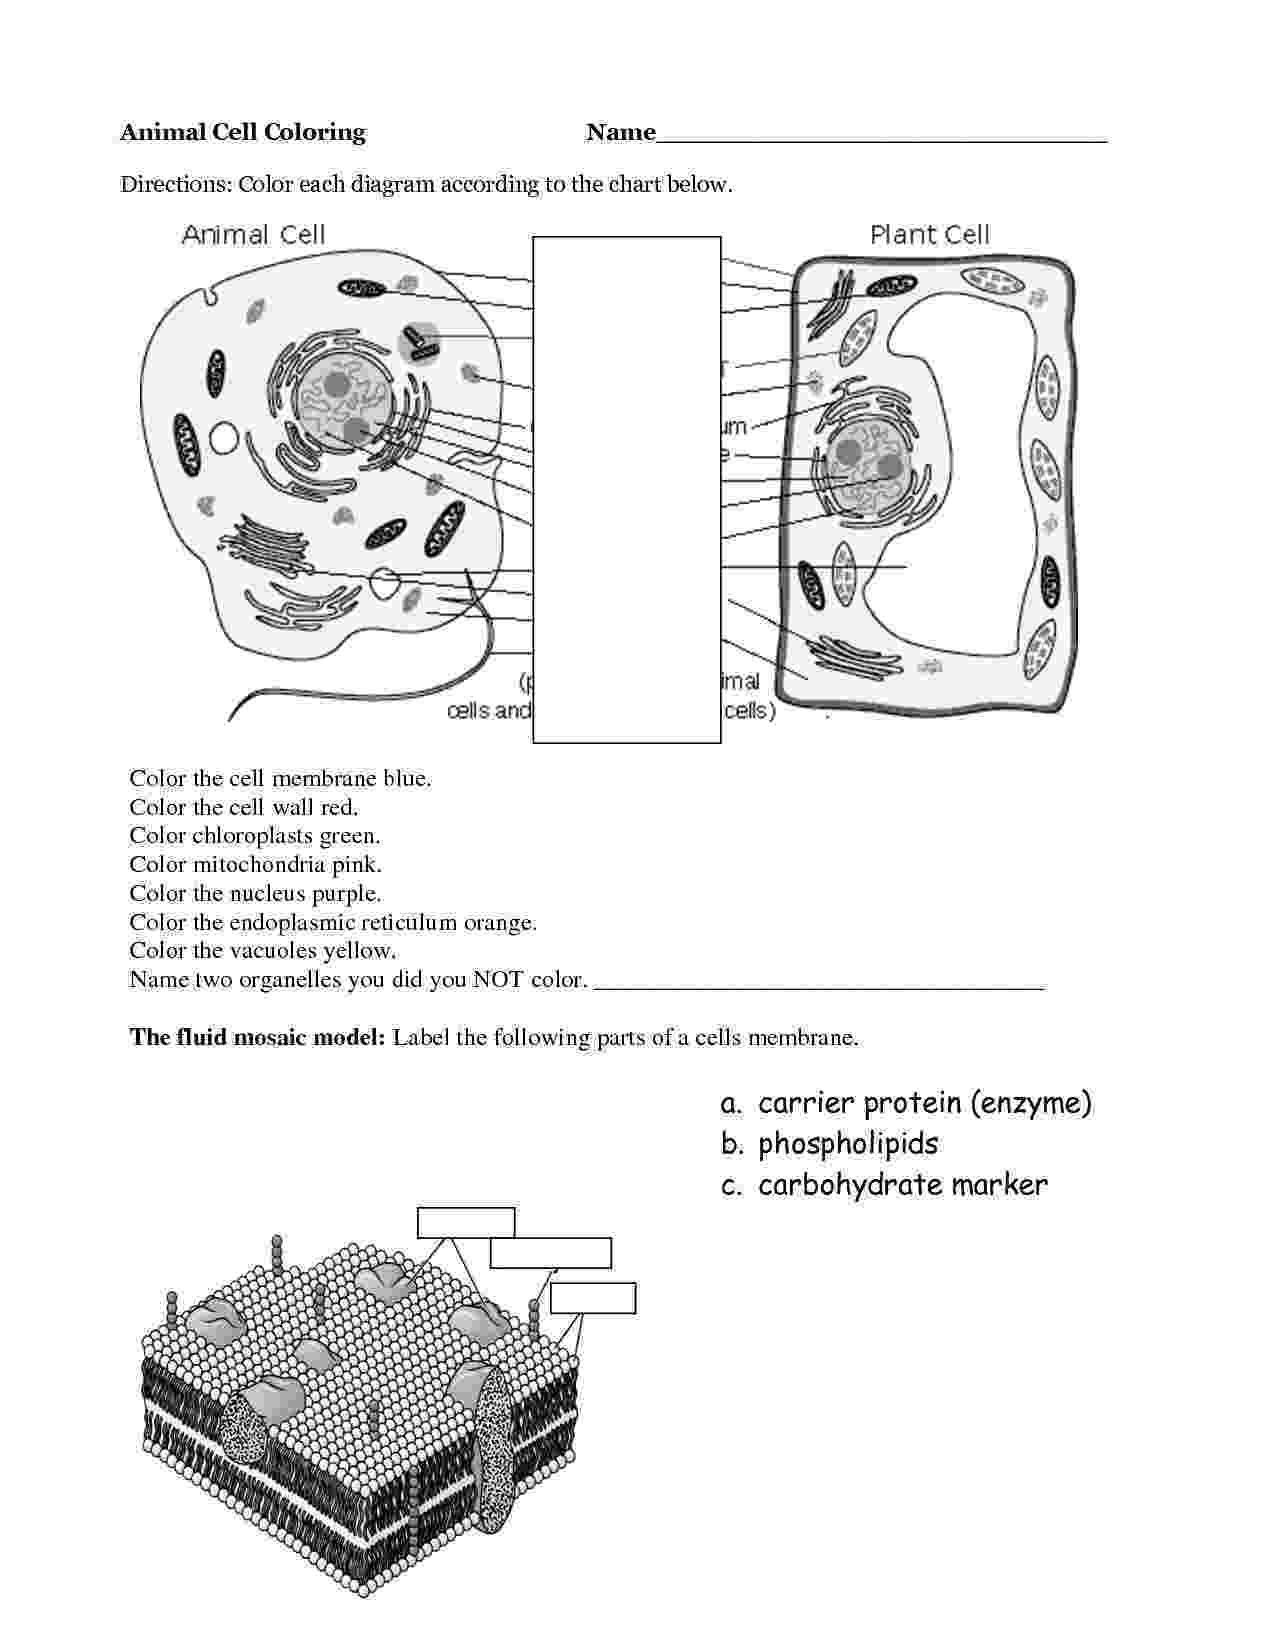 animal cell coloring page animal cell coloring page coloring home cell coloring page animal